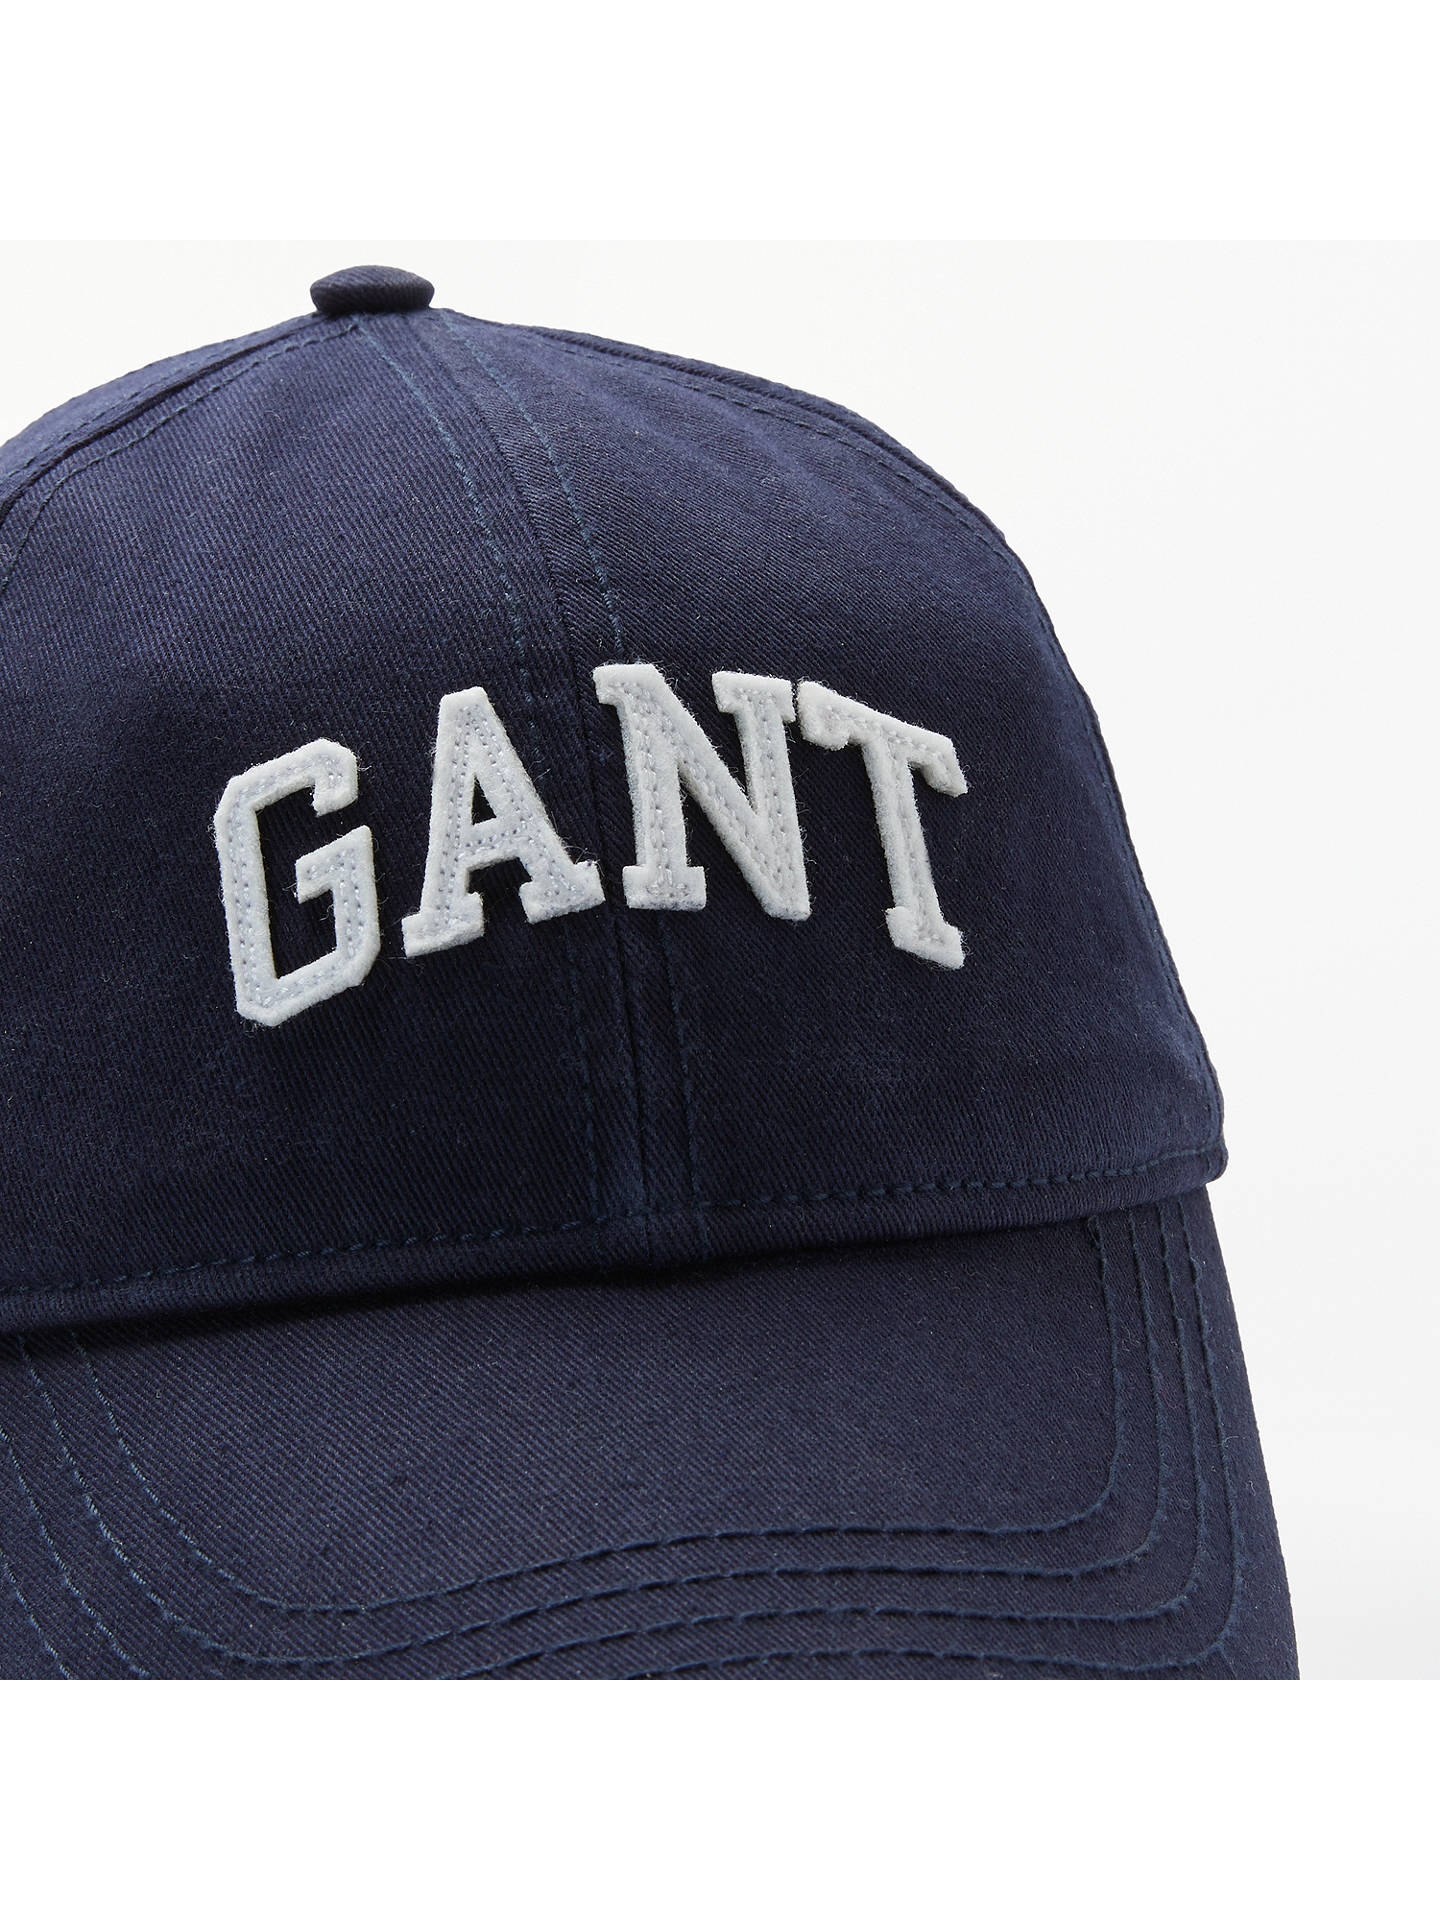 ... BuyGANT Washed Twill Baseball Cap 42b102f6f45